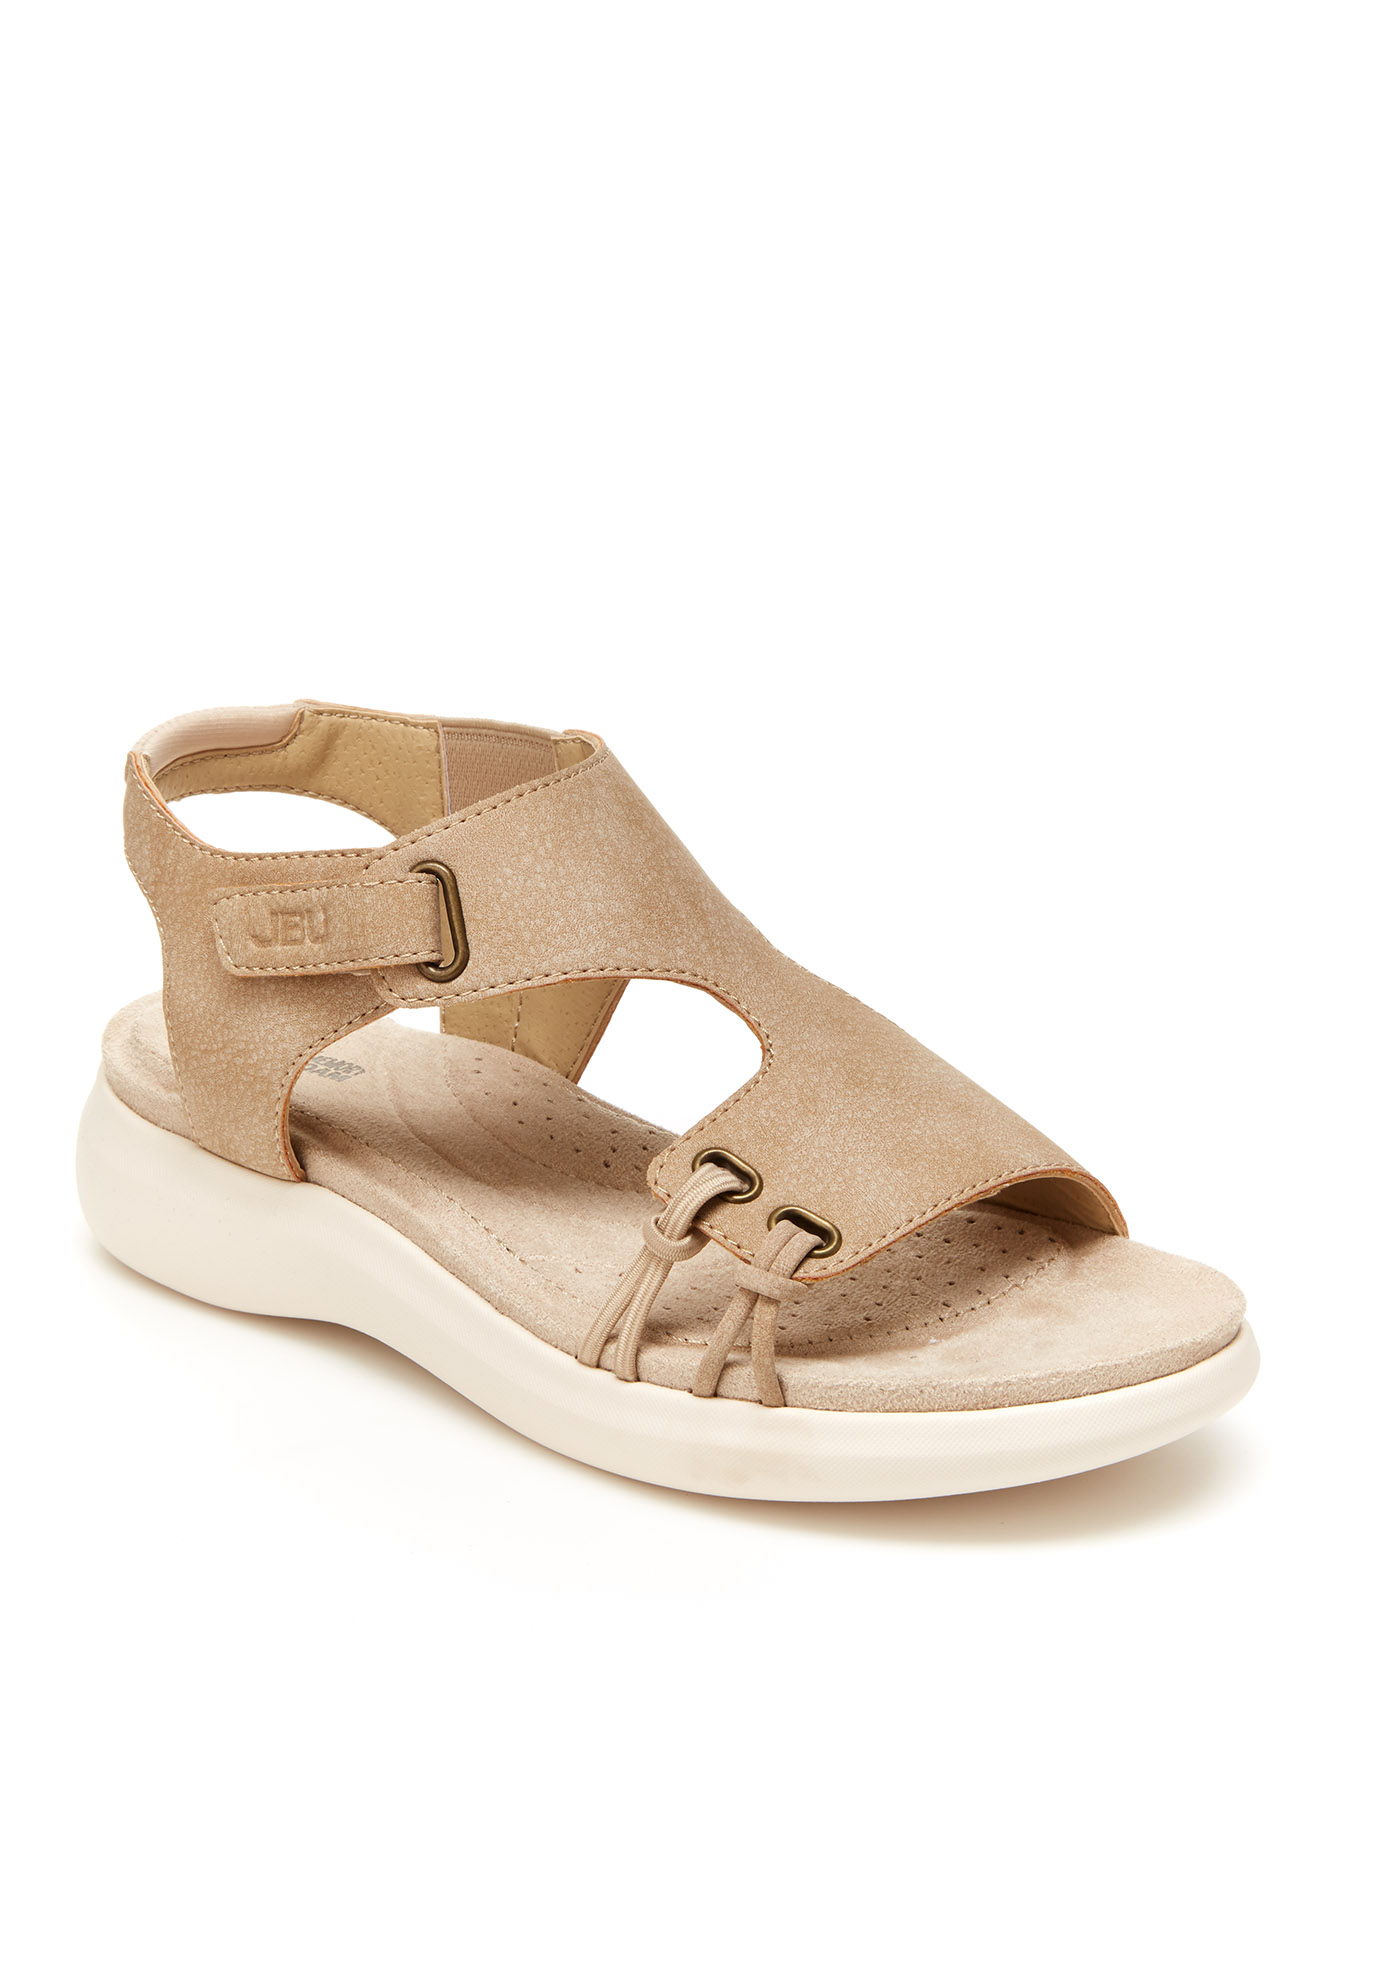 Alice Vegan Sandals,